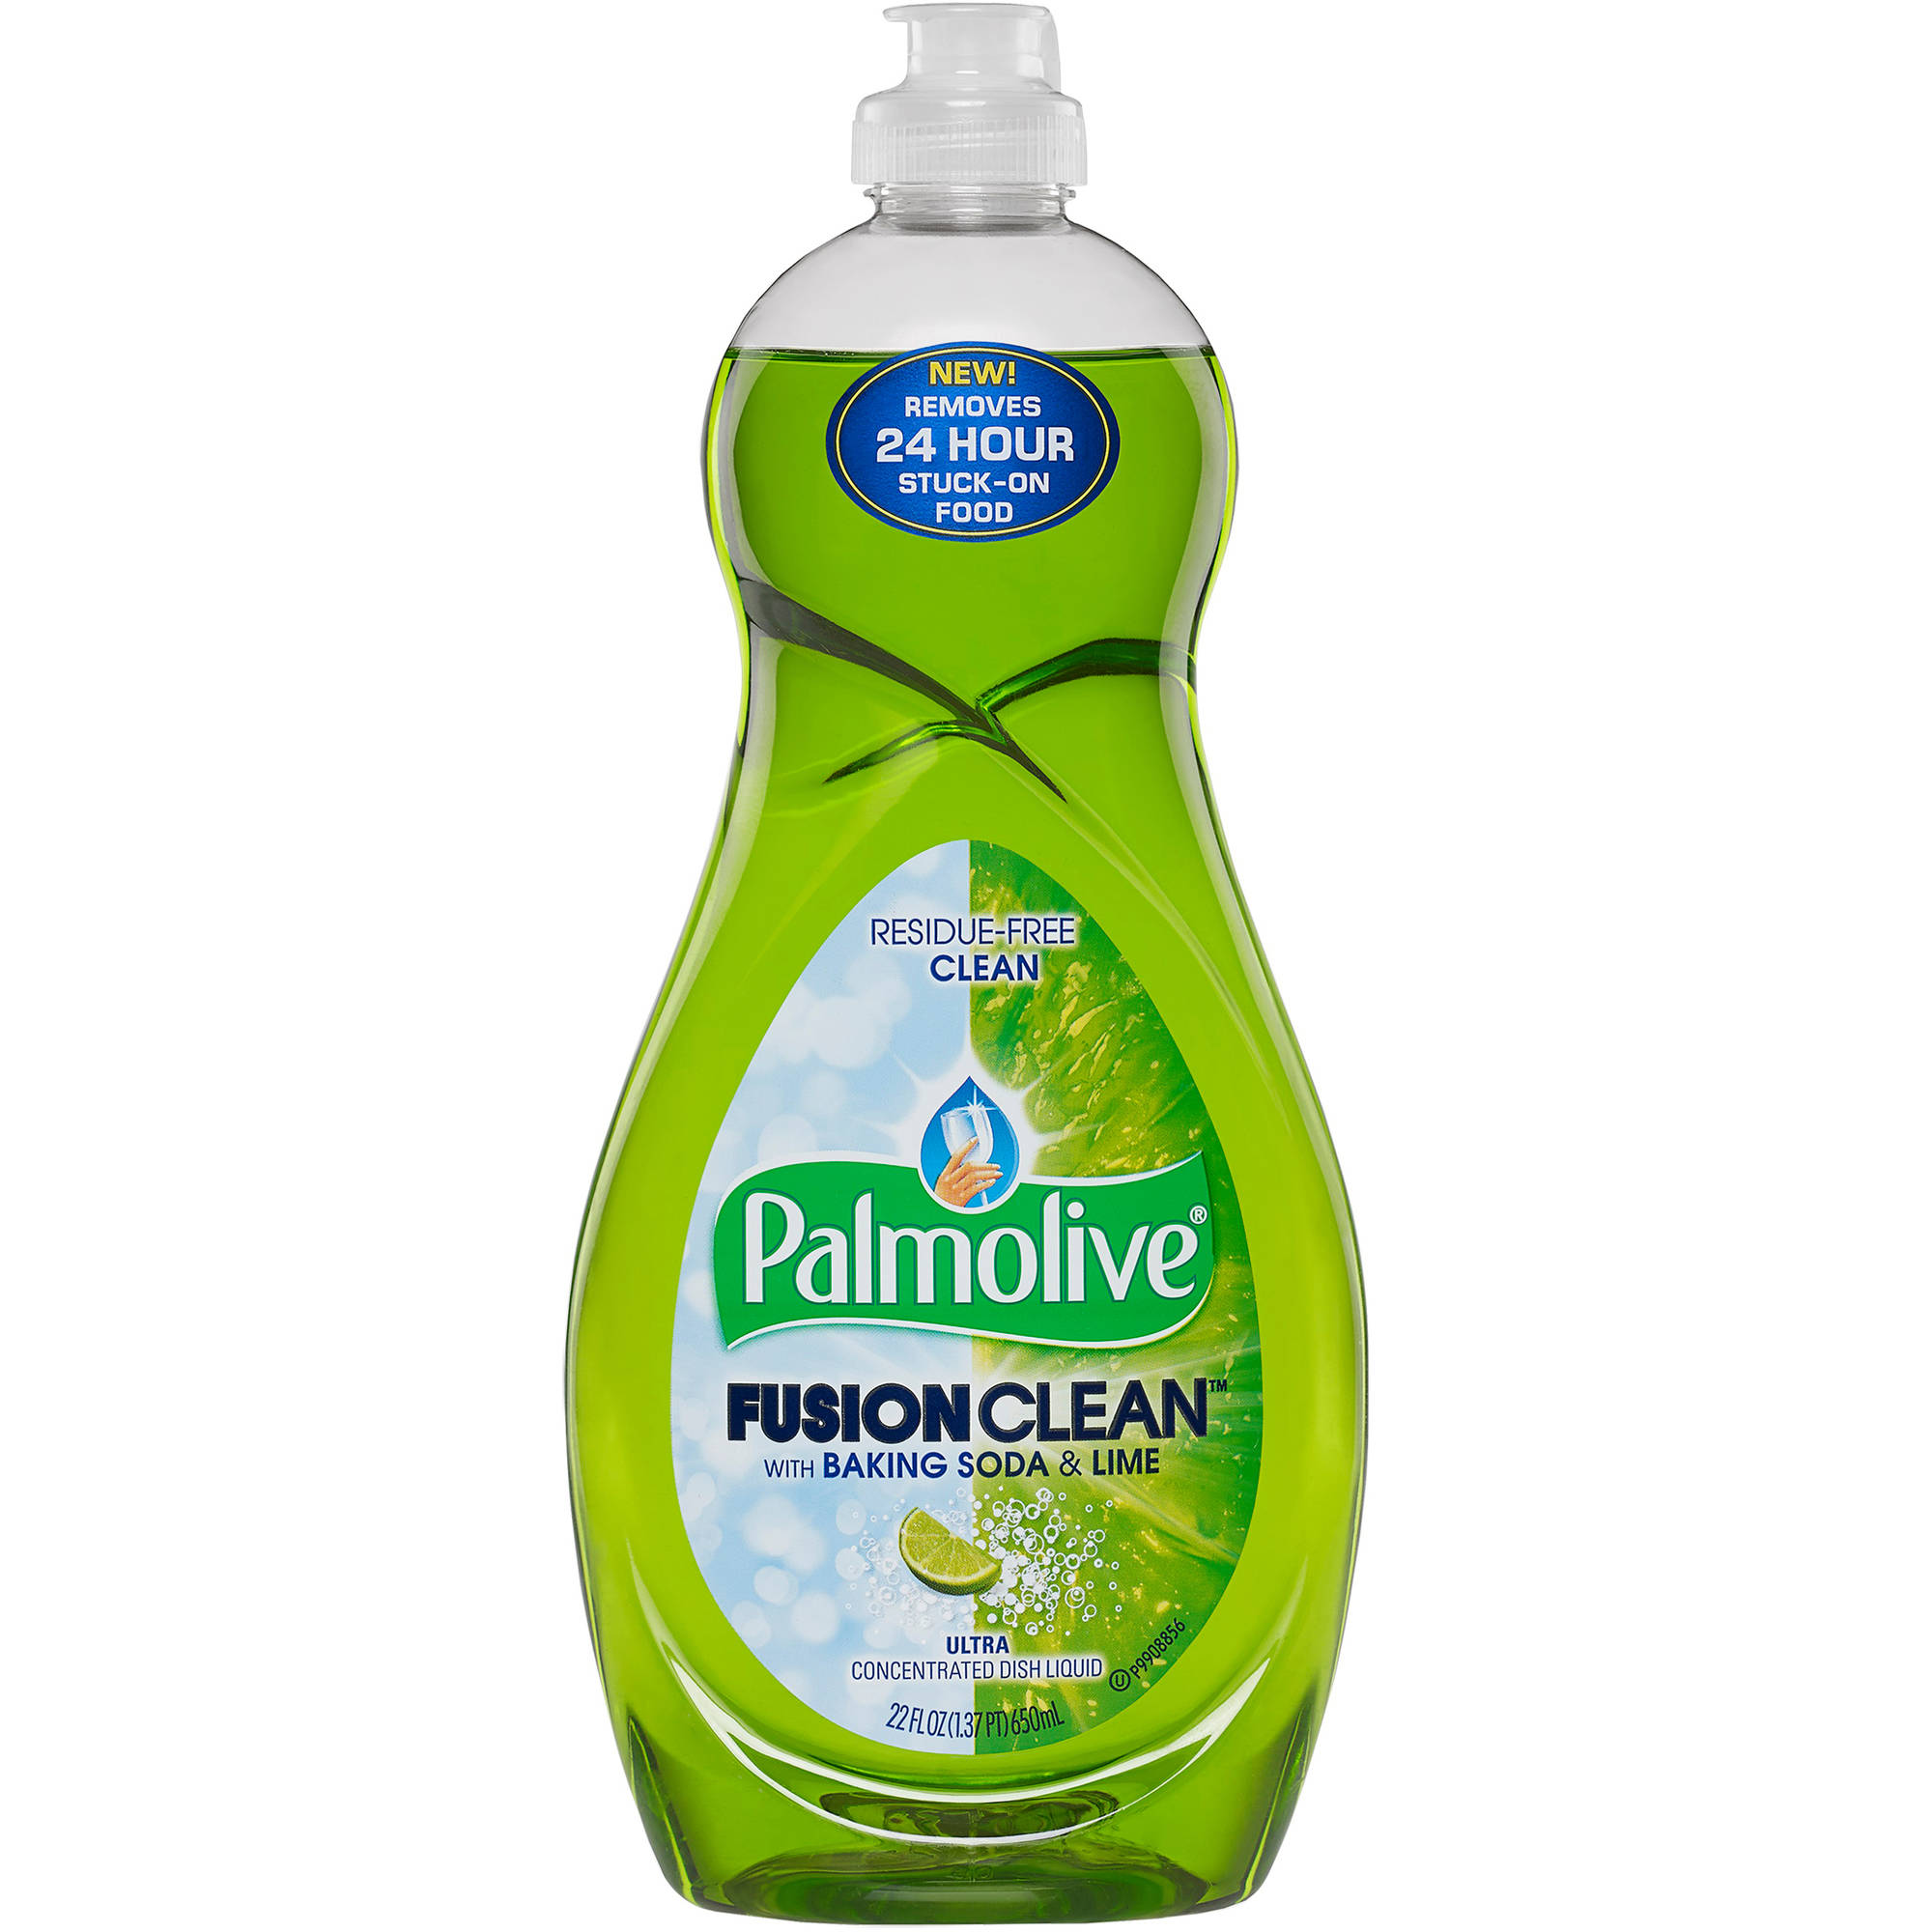 Palmolive FusionClean with Baking Soda & Lime Ultra Concentrated Dish Liquid, 22 fl oz